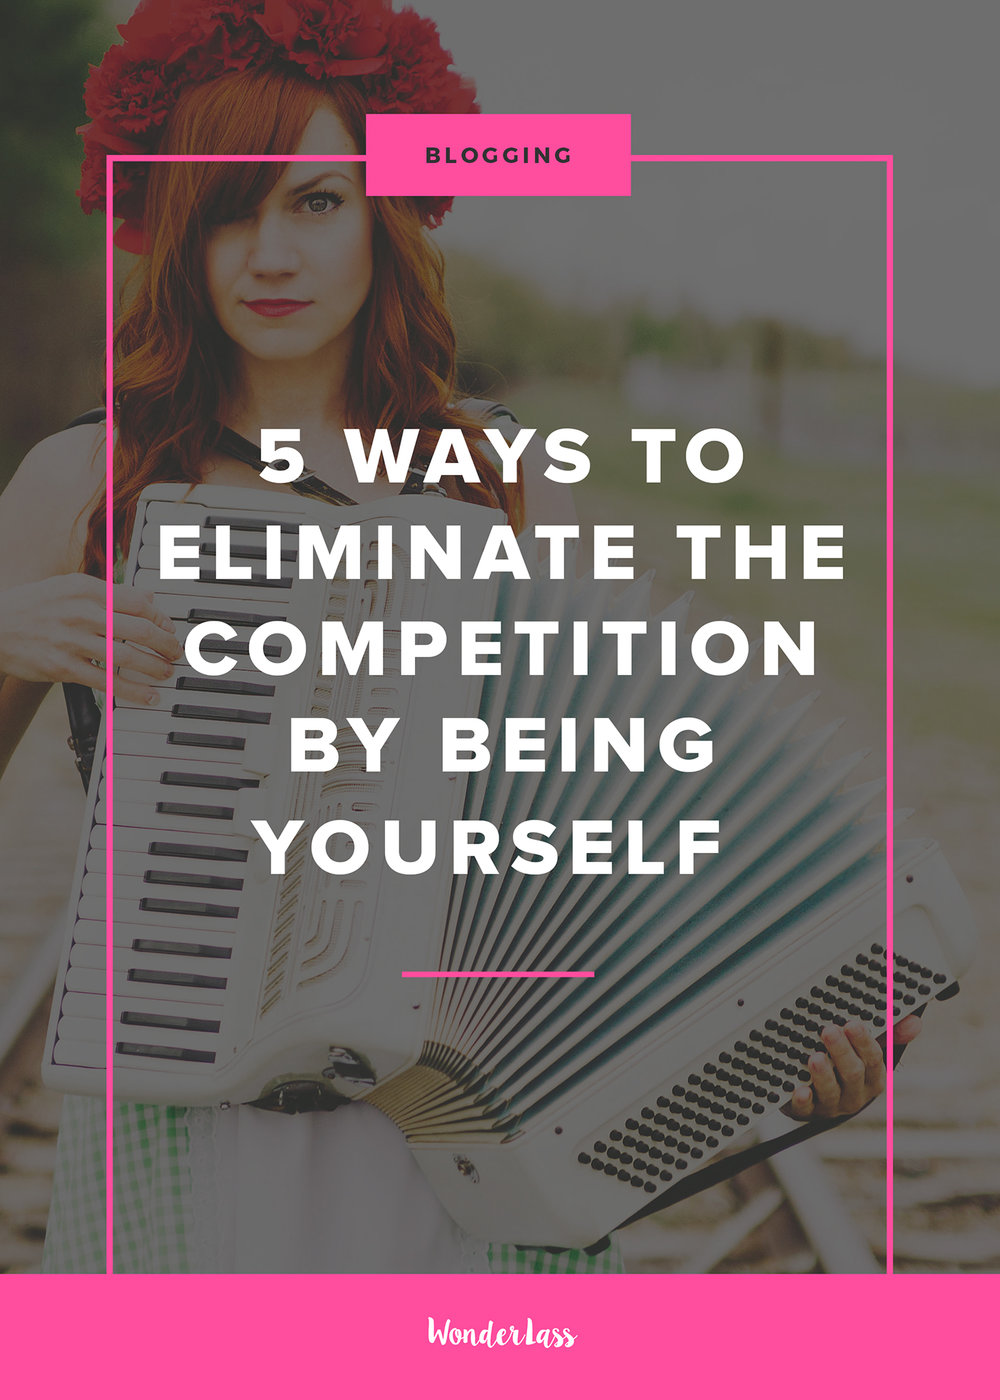 5 Ways to Eliminate the Competition by Being Yourself | Learn how to make your blog or online business stand out online | Wonderlass